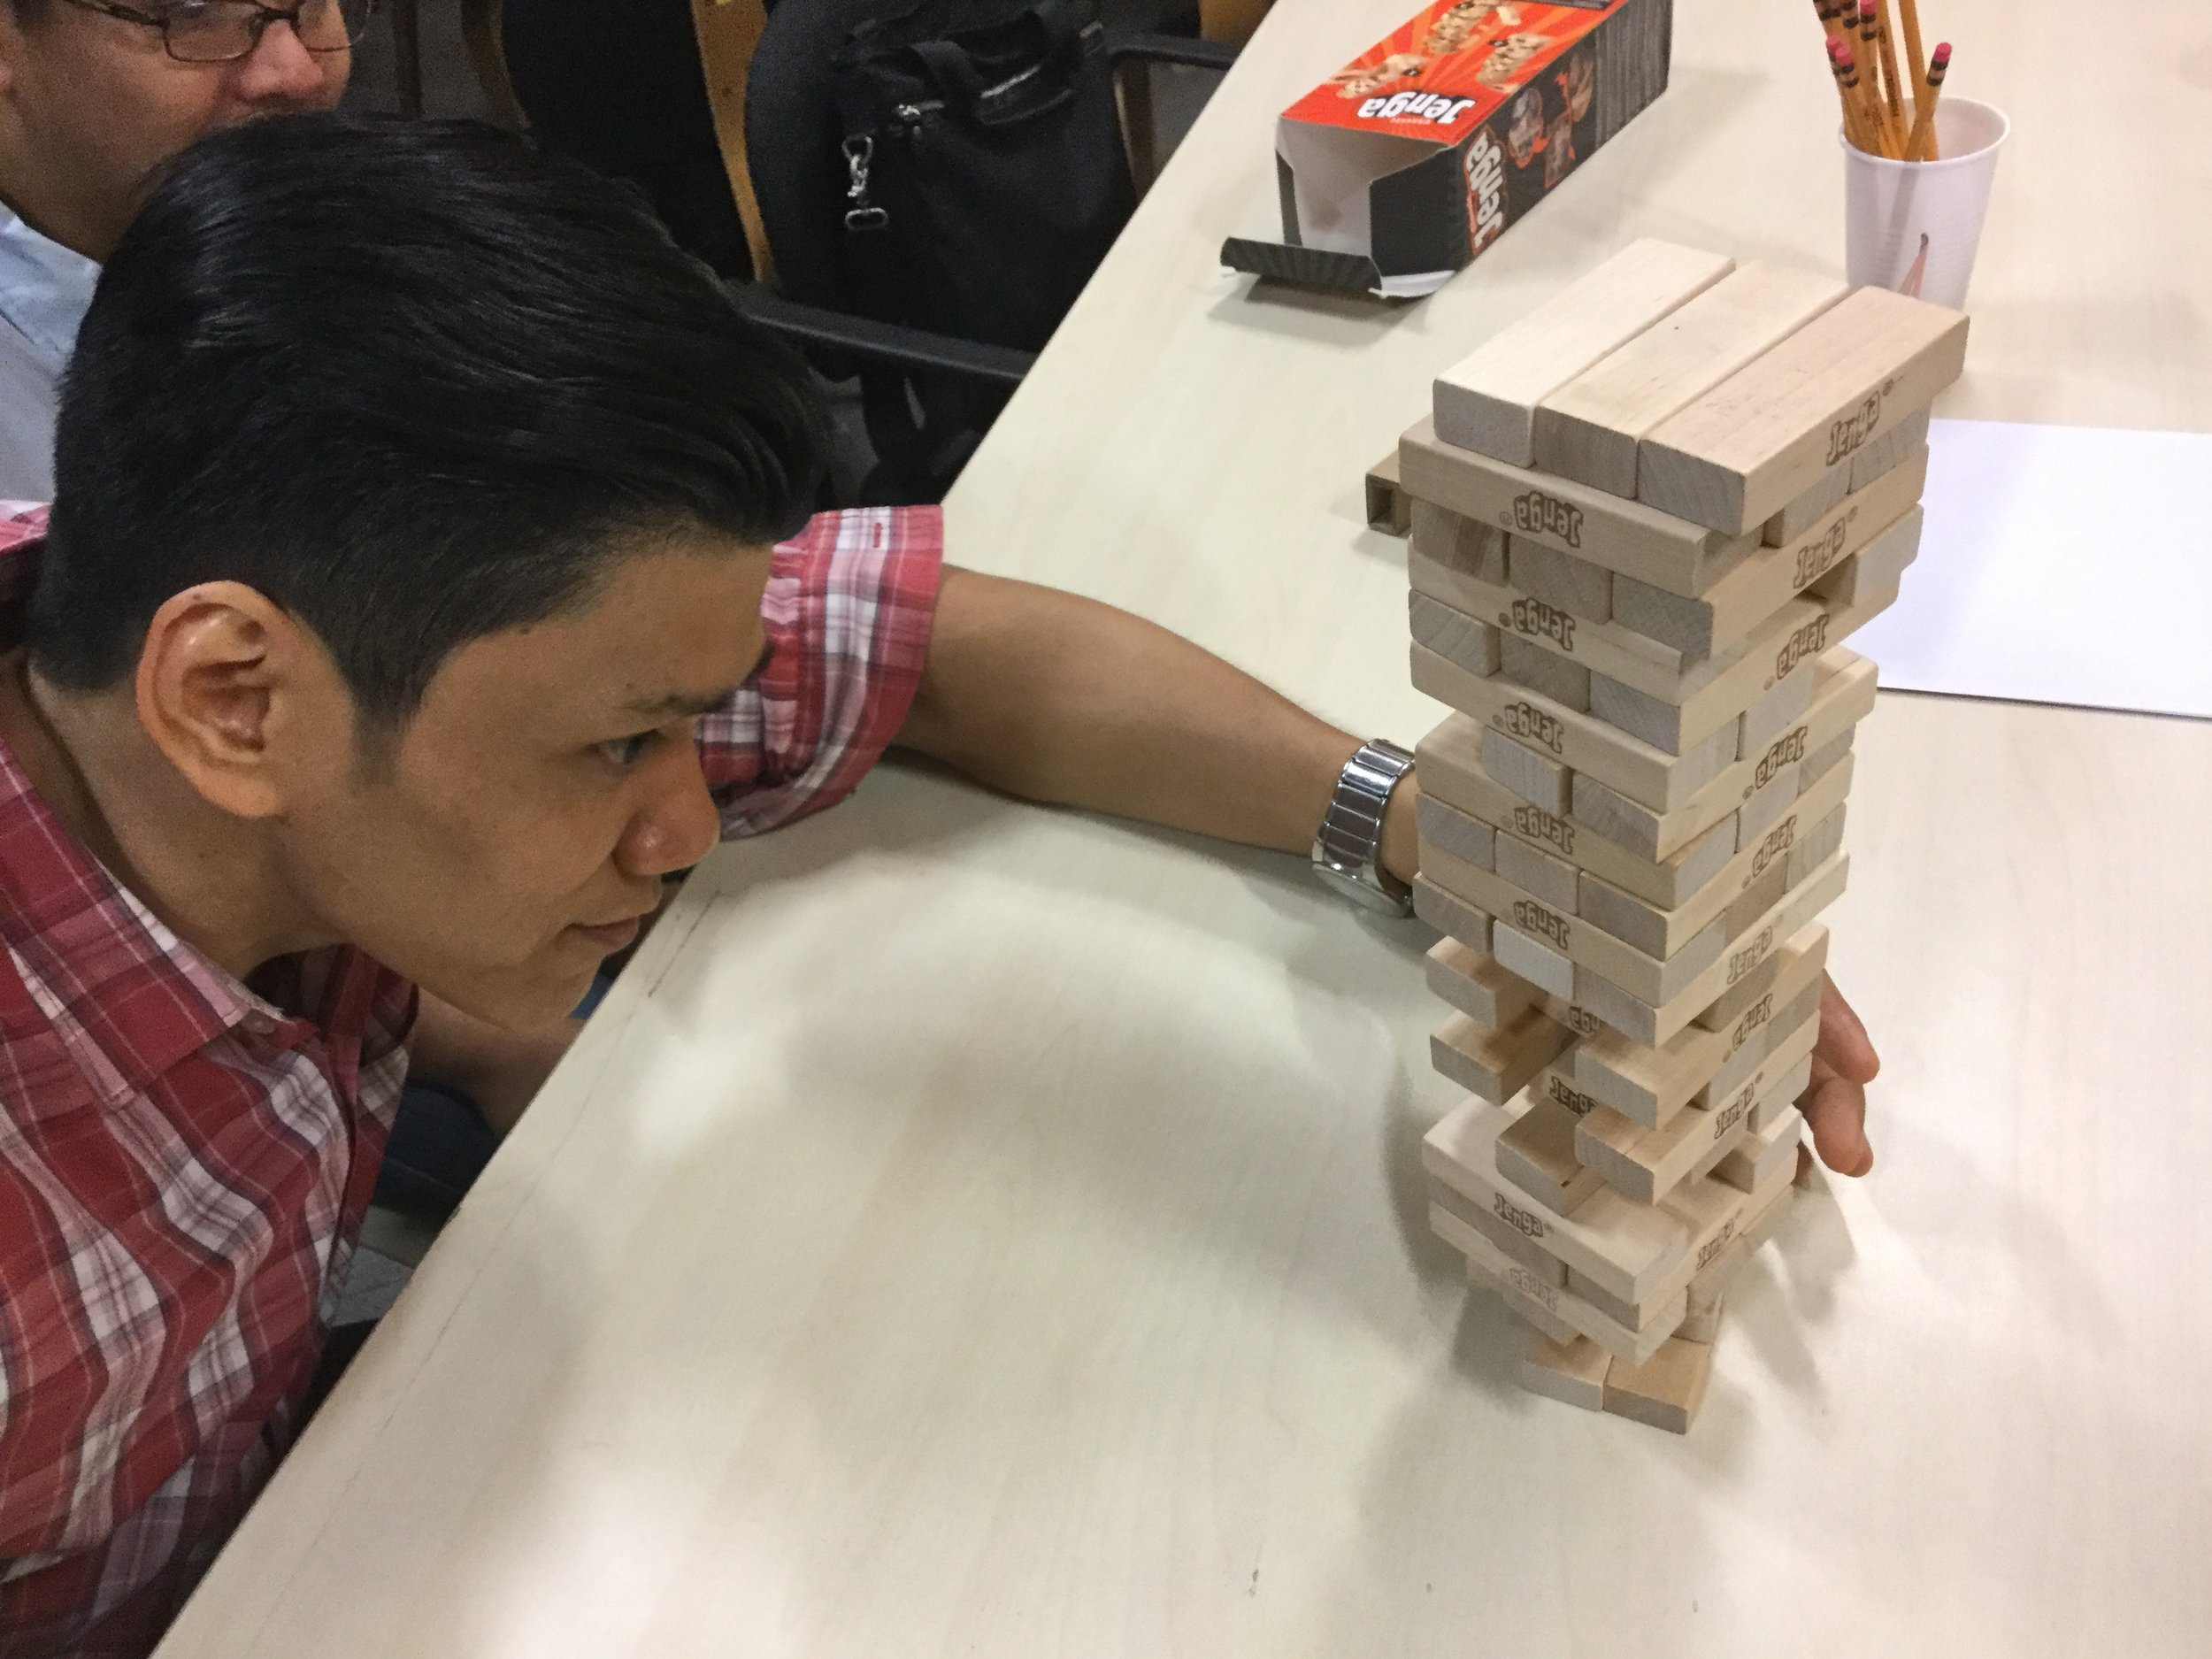 Managing Director Emmanuel Javier steadies his hand against the tower.